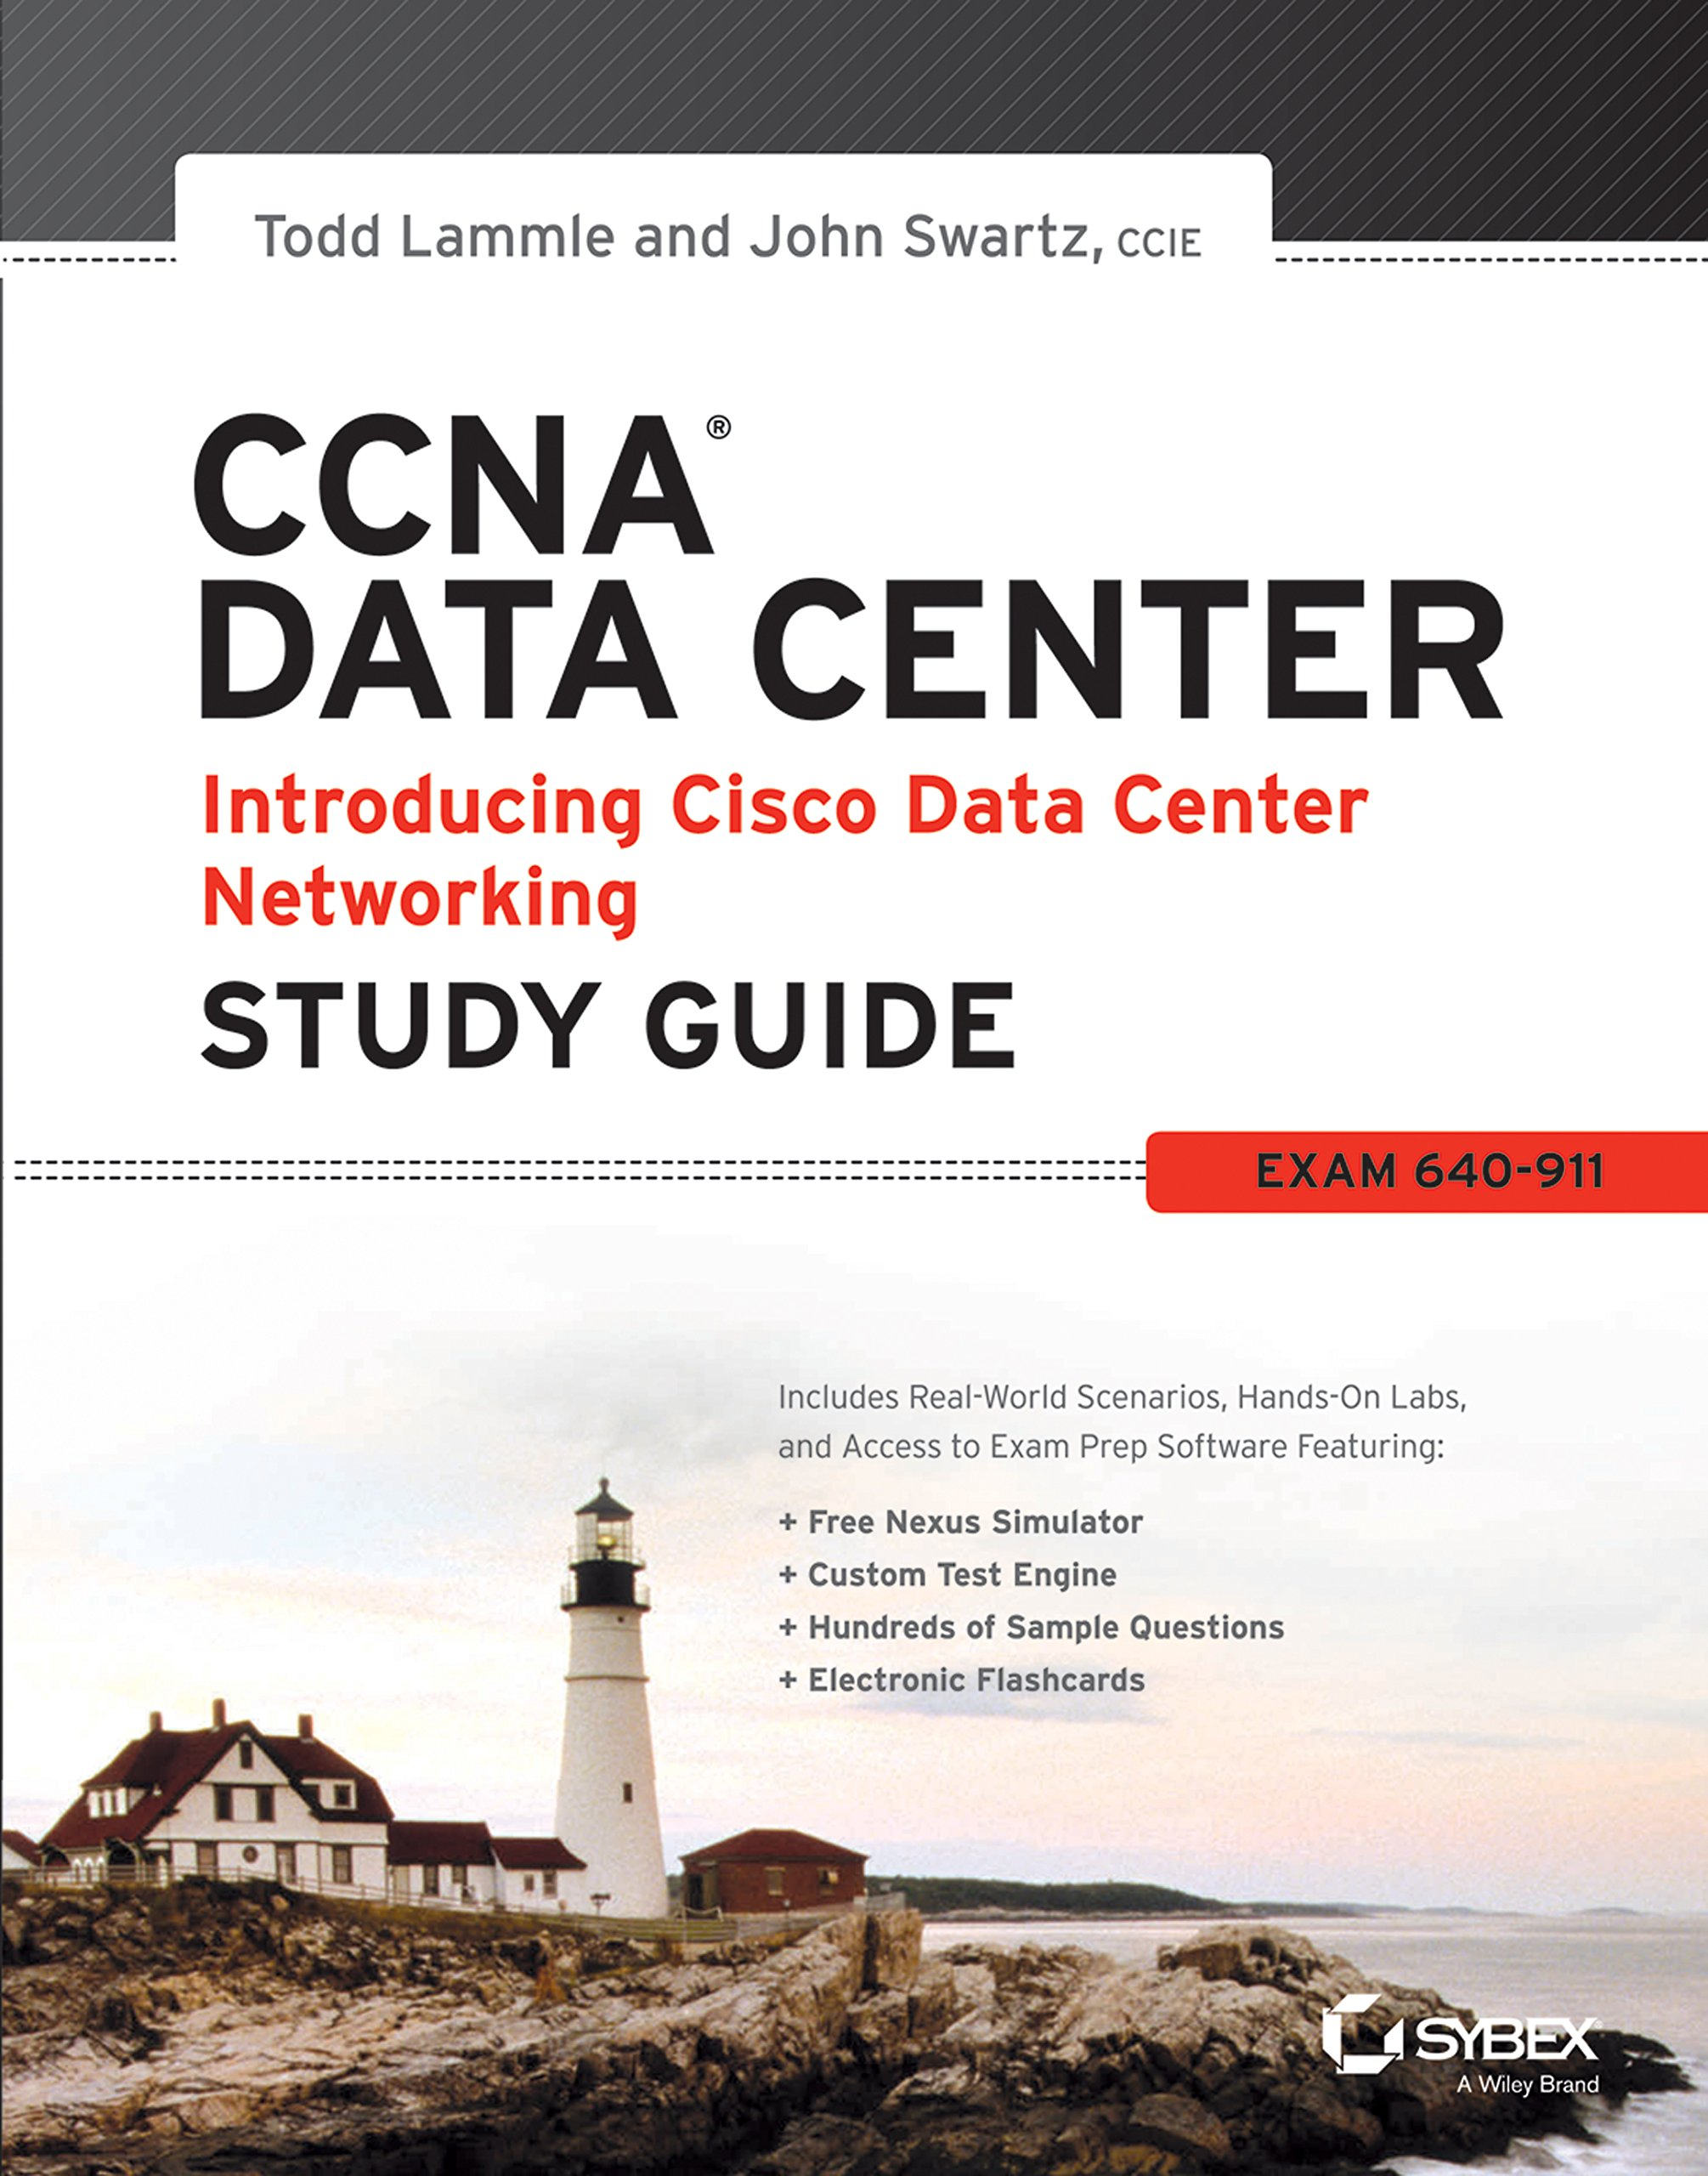 Buy CCNA Data Center: Introducing Cisco Data Center Networking Study Guide,  Exam 640-911 (SYBEX) Book Online at Low Prices in India | CCNA Data Center:  ...